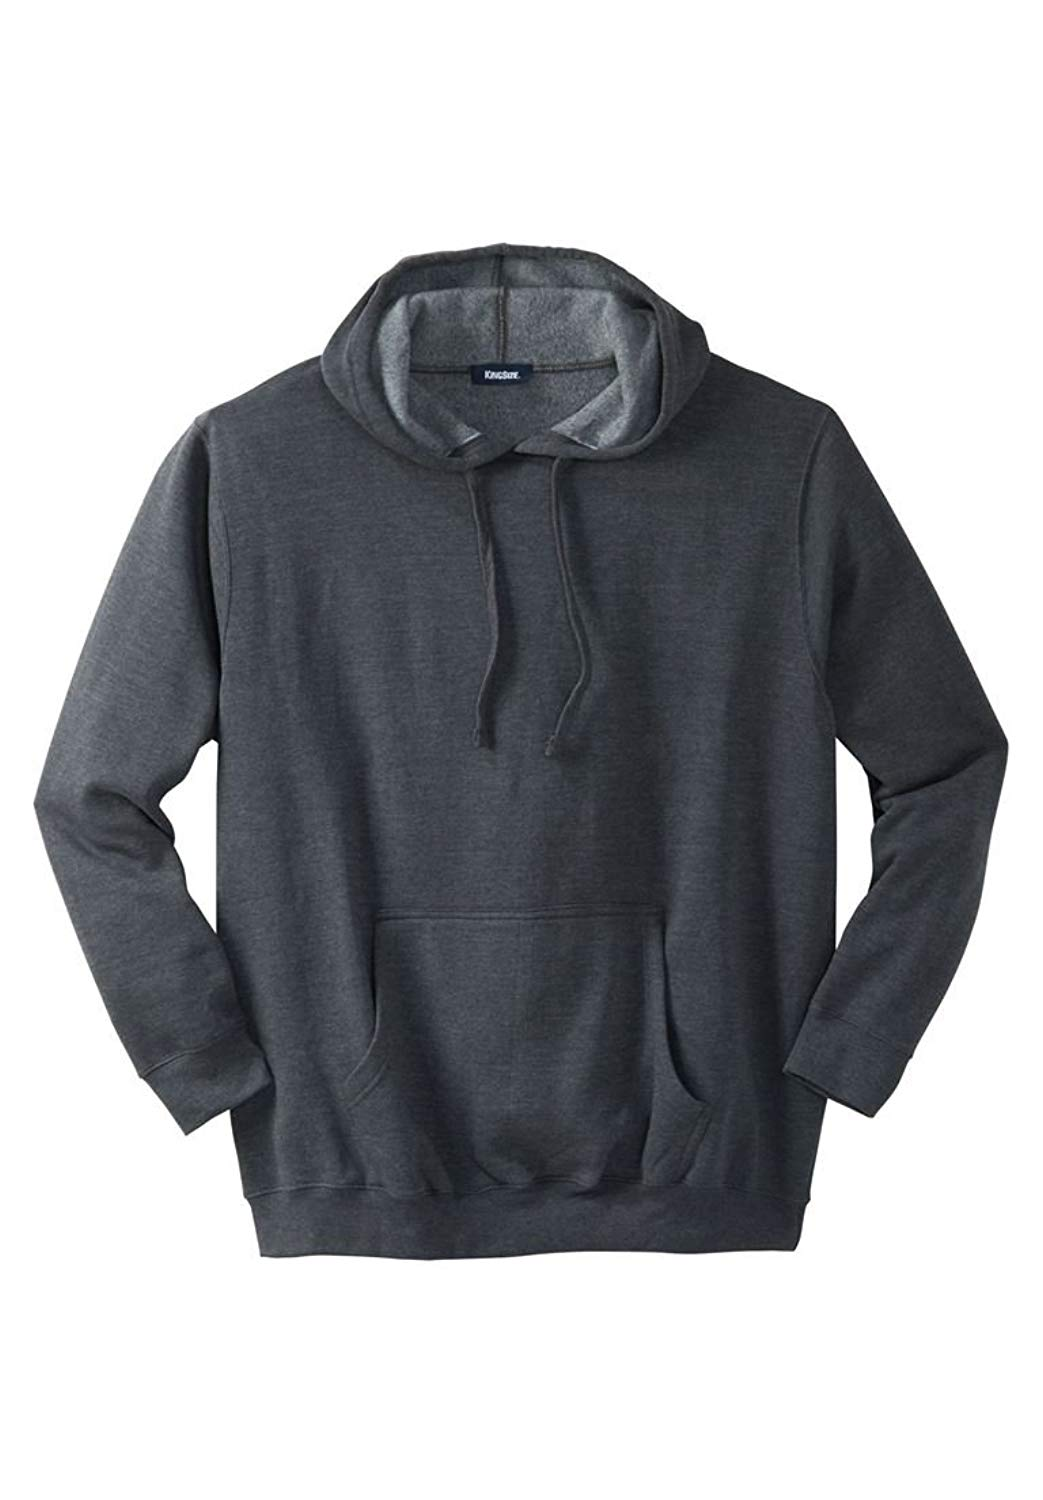 0e16849e2 Cheap Big And Tall Hoodie, find Big And Tall Hoodie deals on line at ...